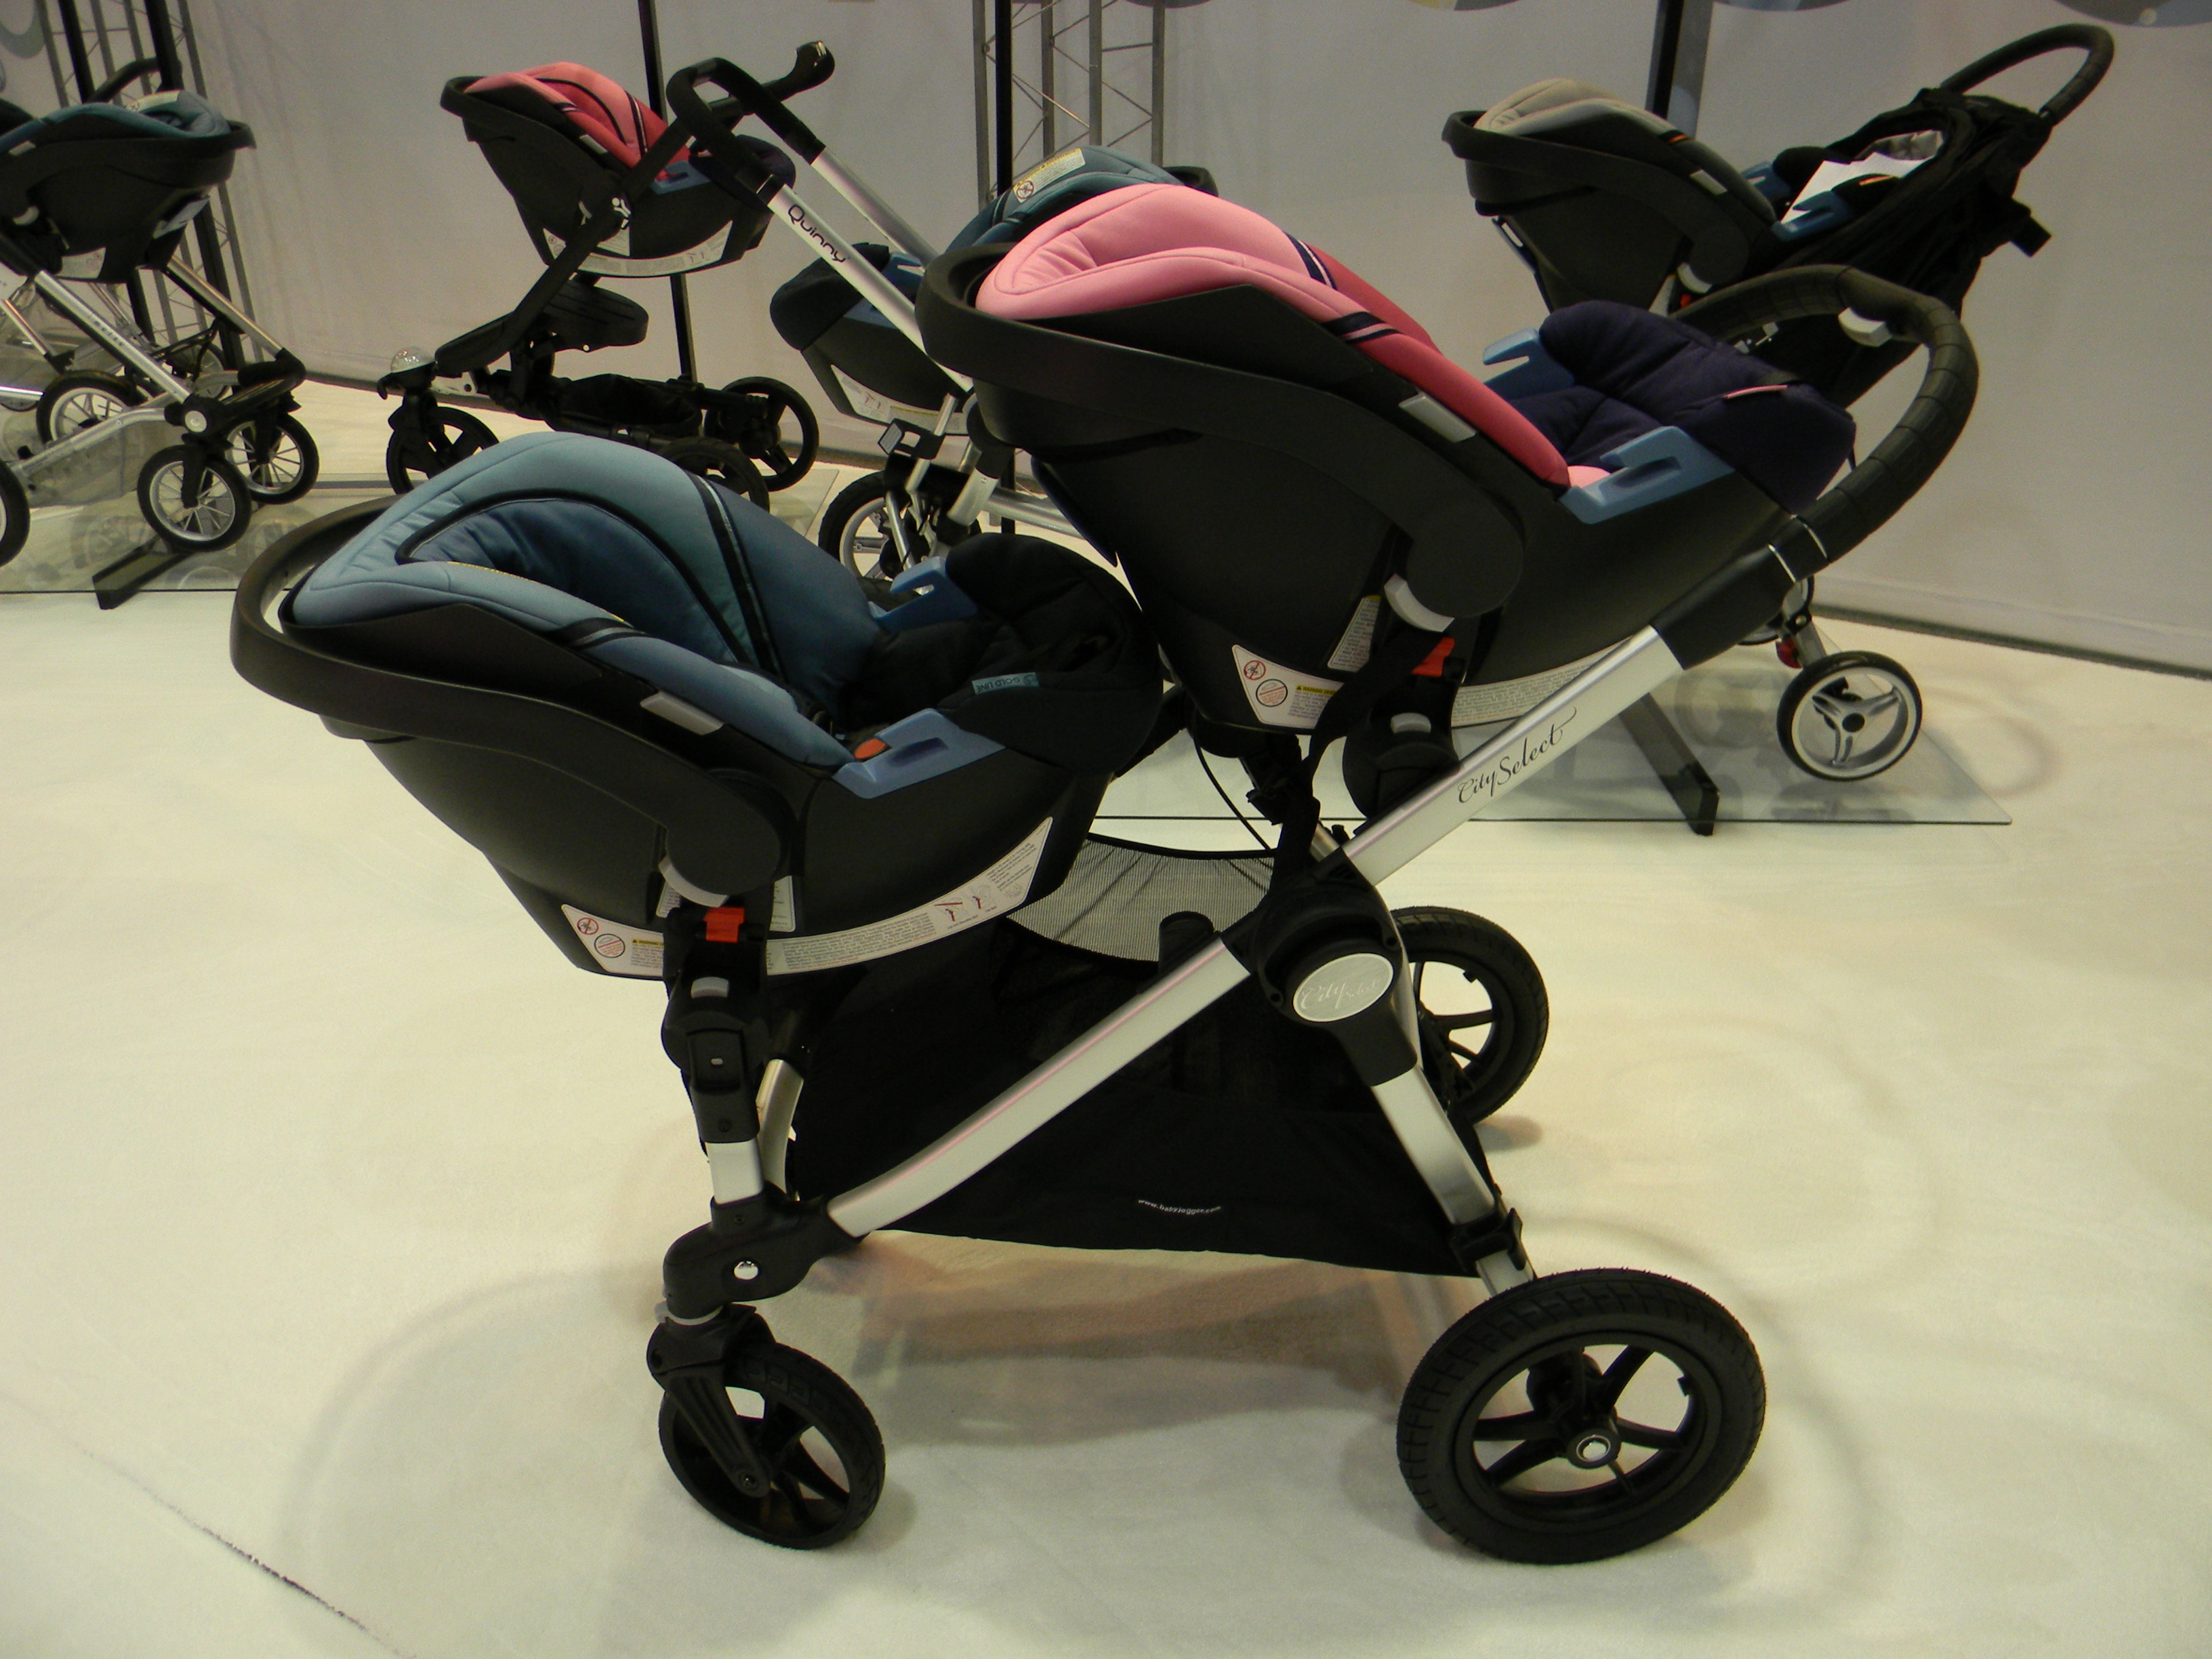 Double Stroller Jogger Reviews Carseatblog The Most Trusted Source For Car Seat Reviews